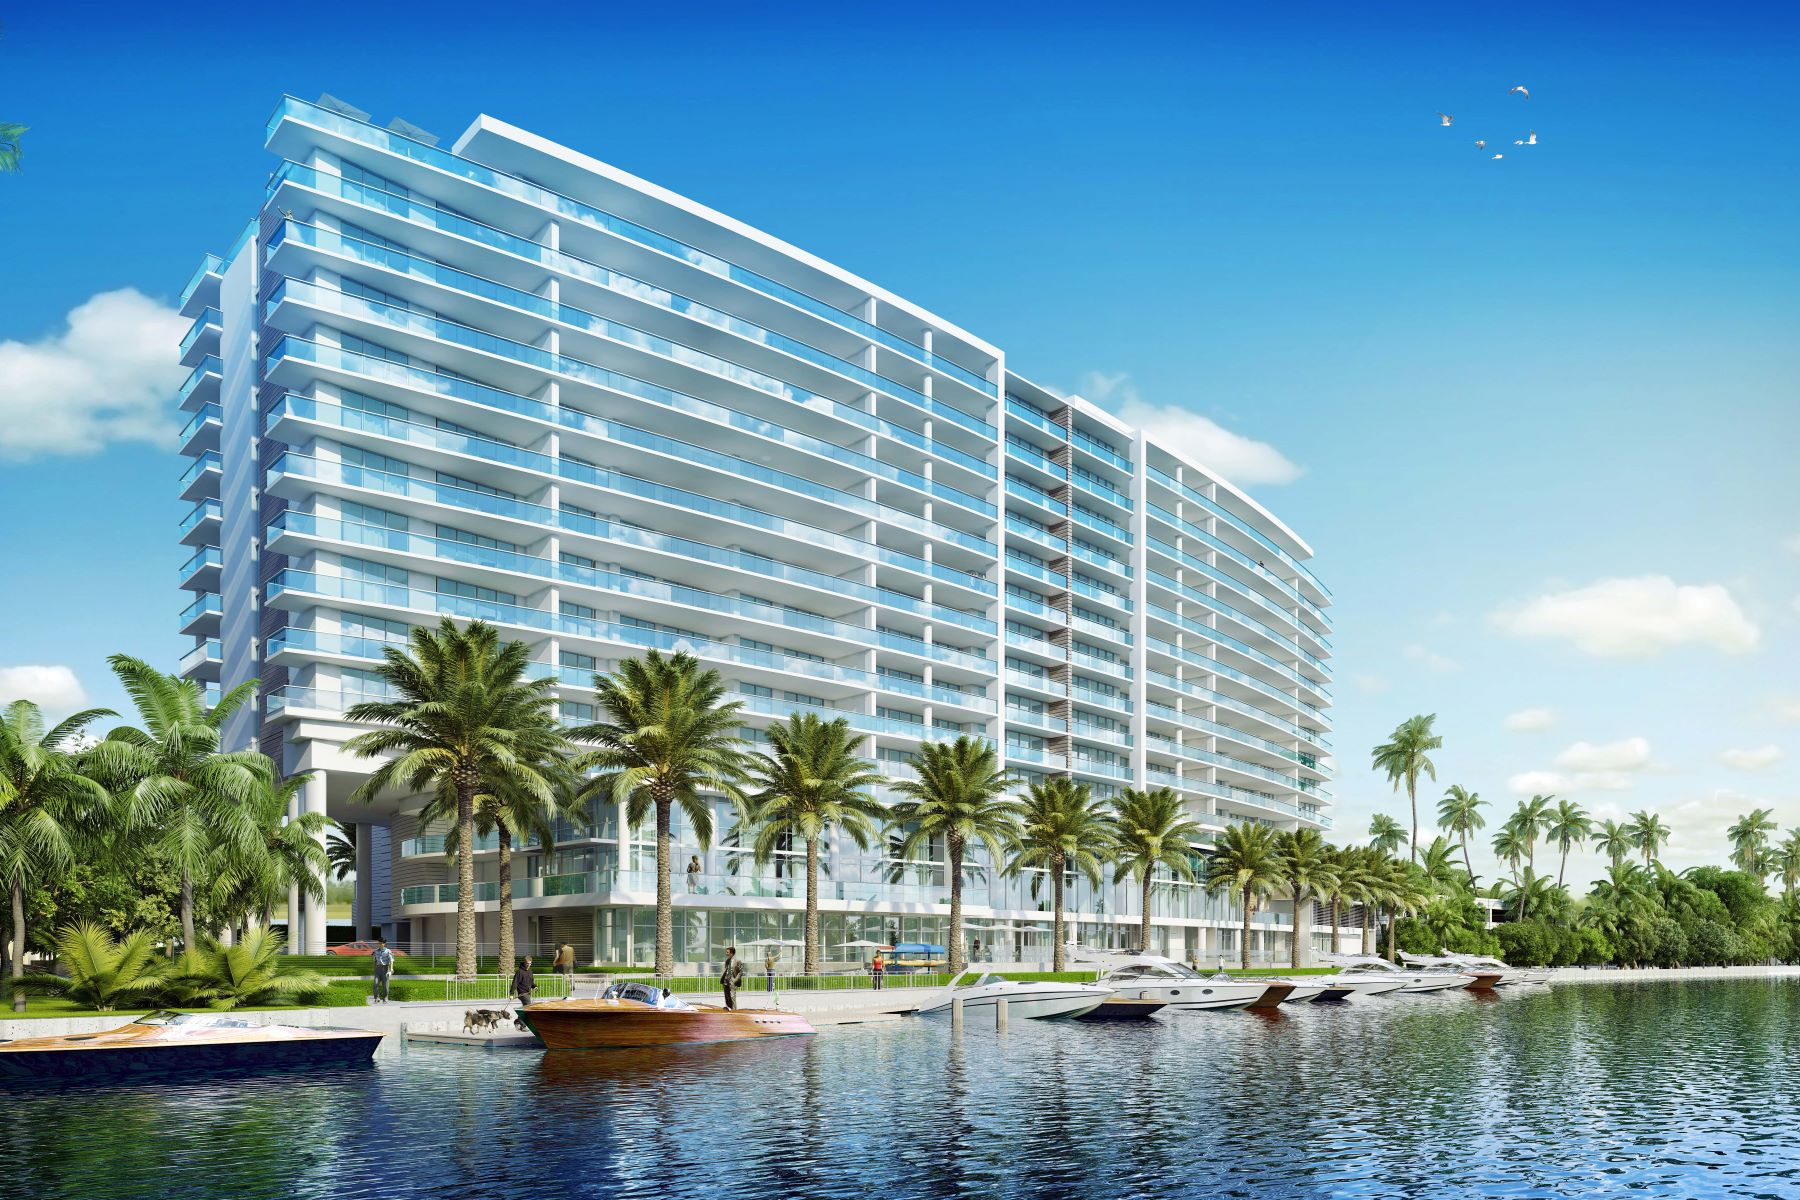 Appartement pour l Vente à 1180 N Federal Hy #504 1180 N Federal Hy 504 Fort Lauderdale, Florida, 33304 États-Unis